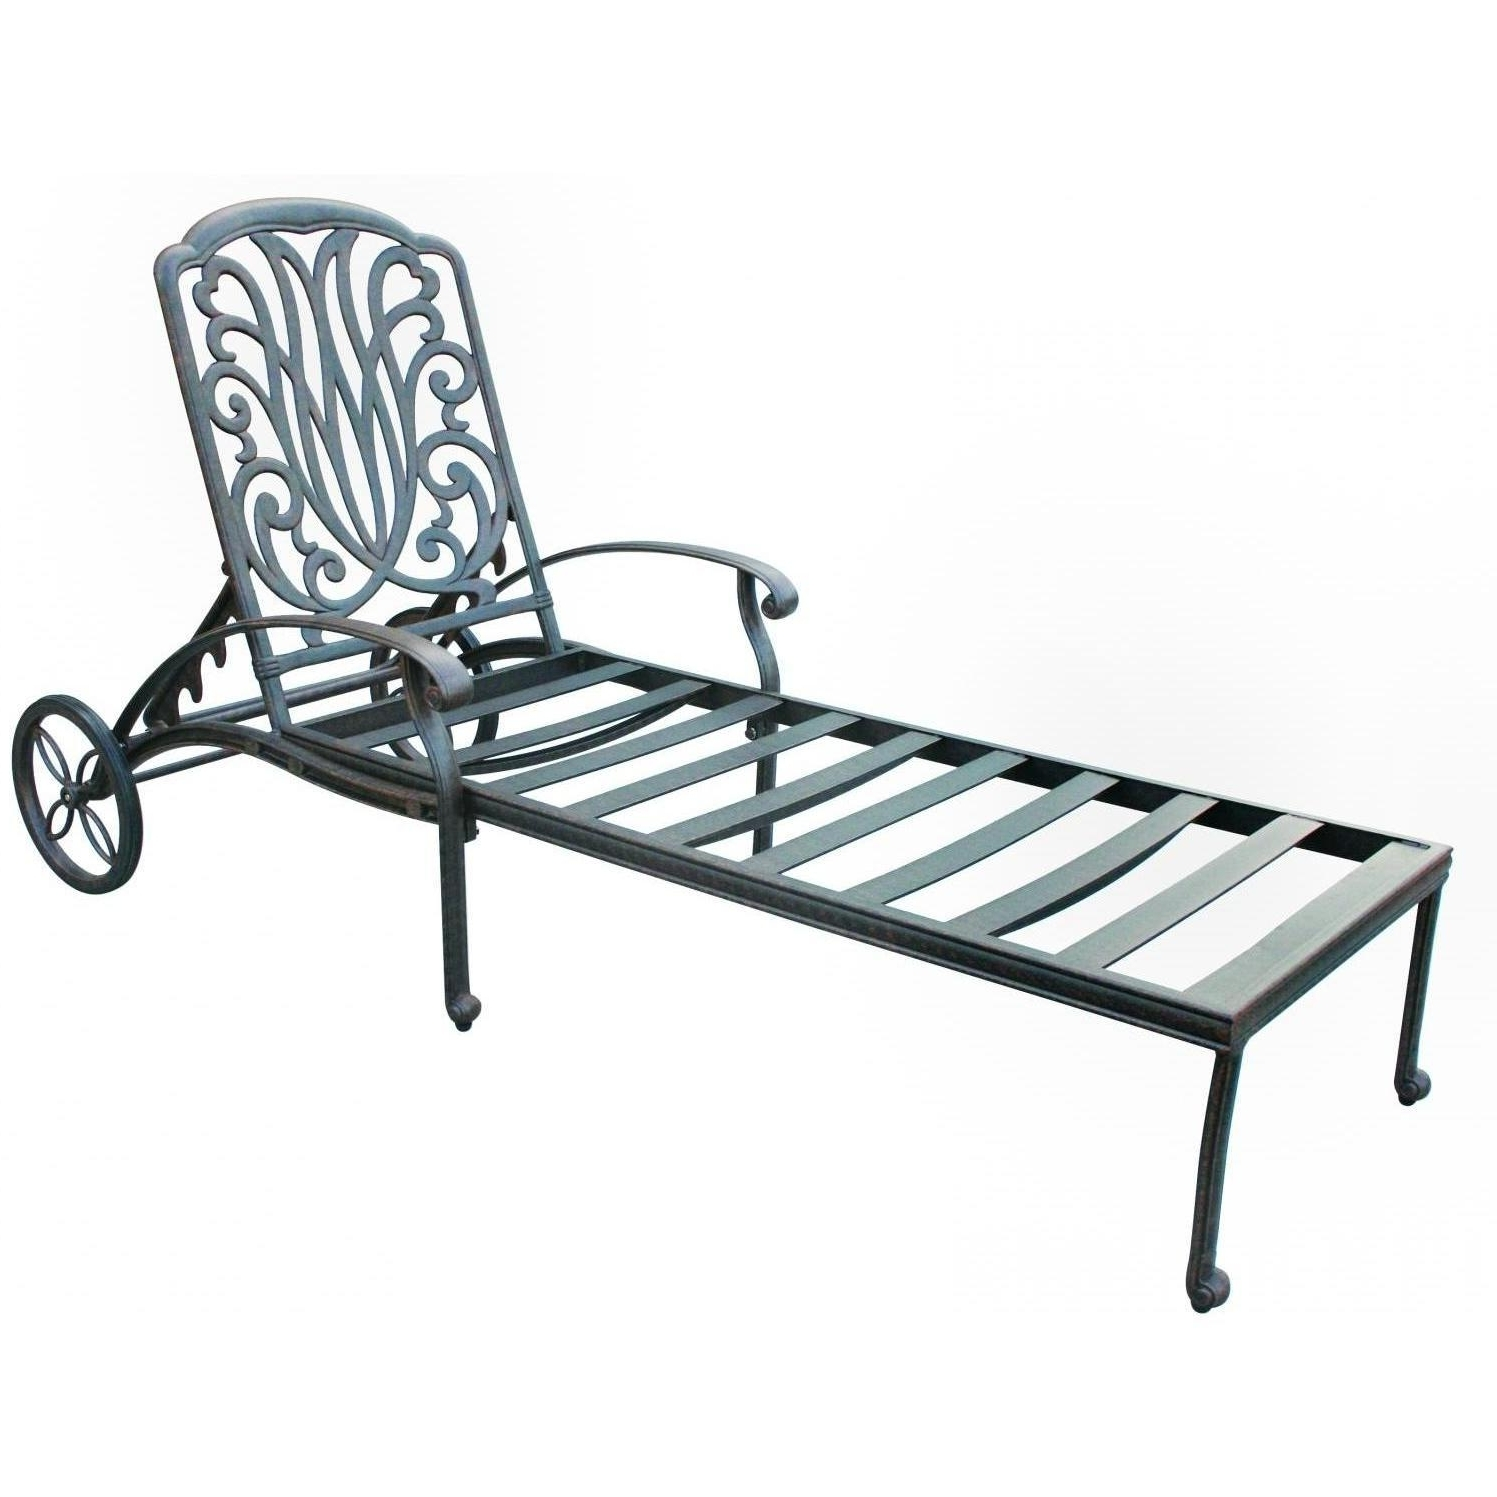 Darlee Elisabeth Cast Aluminum Patio Chaise Lounge : Ultimate Patio Regarding Most Current Cast Aluminum Chaise Lounges With Wheels (View 12 of 15)